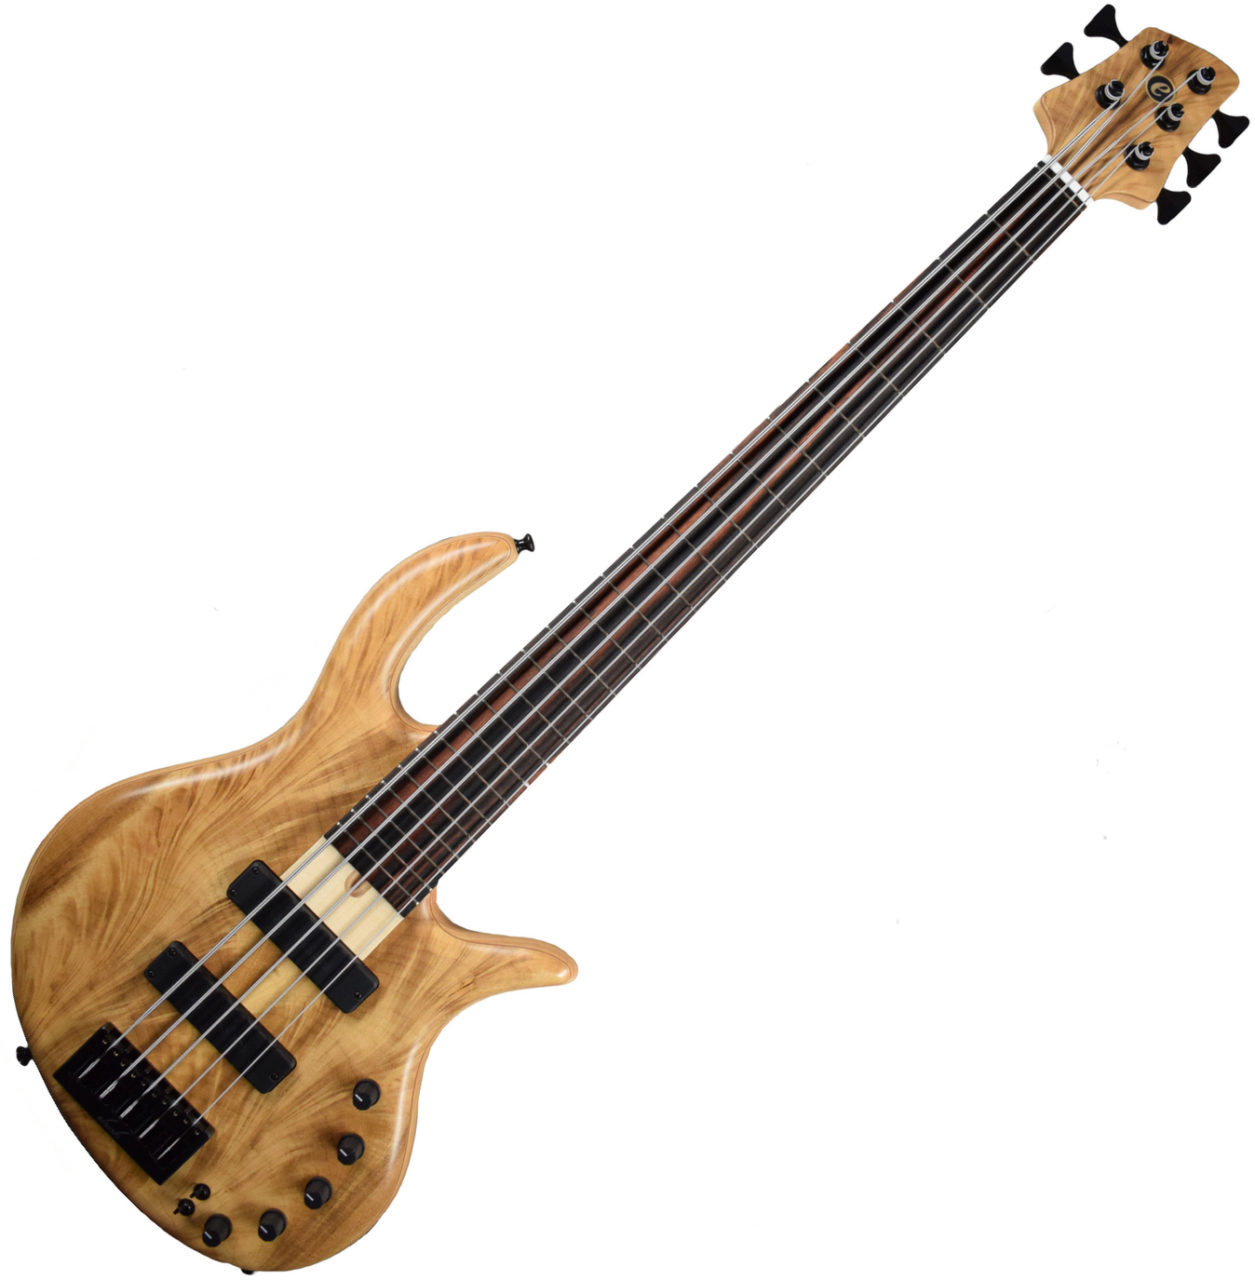 Elrick Gold e-volution Crotched myrtle burl  5 strings